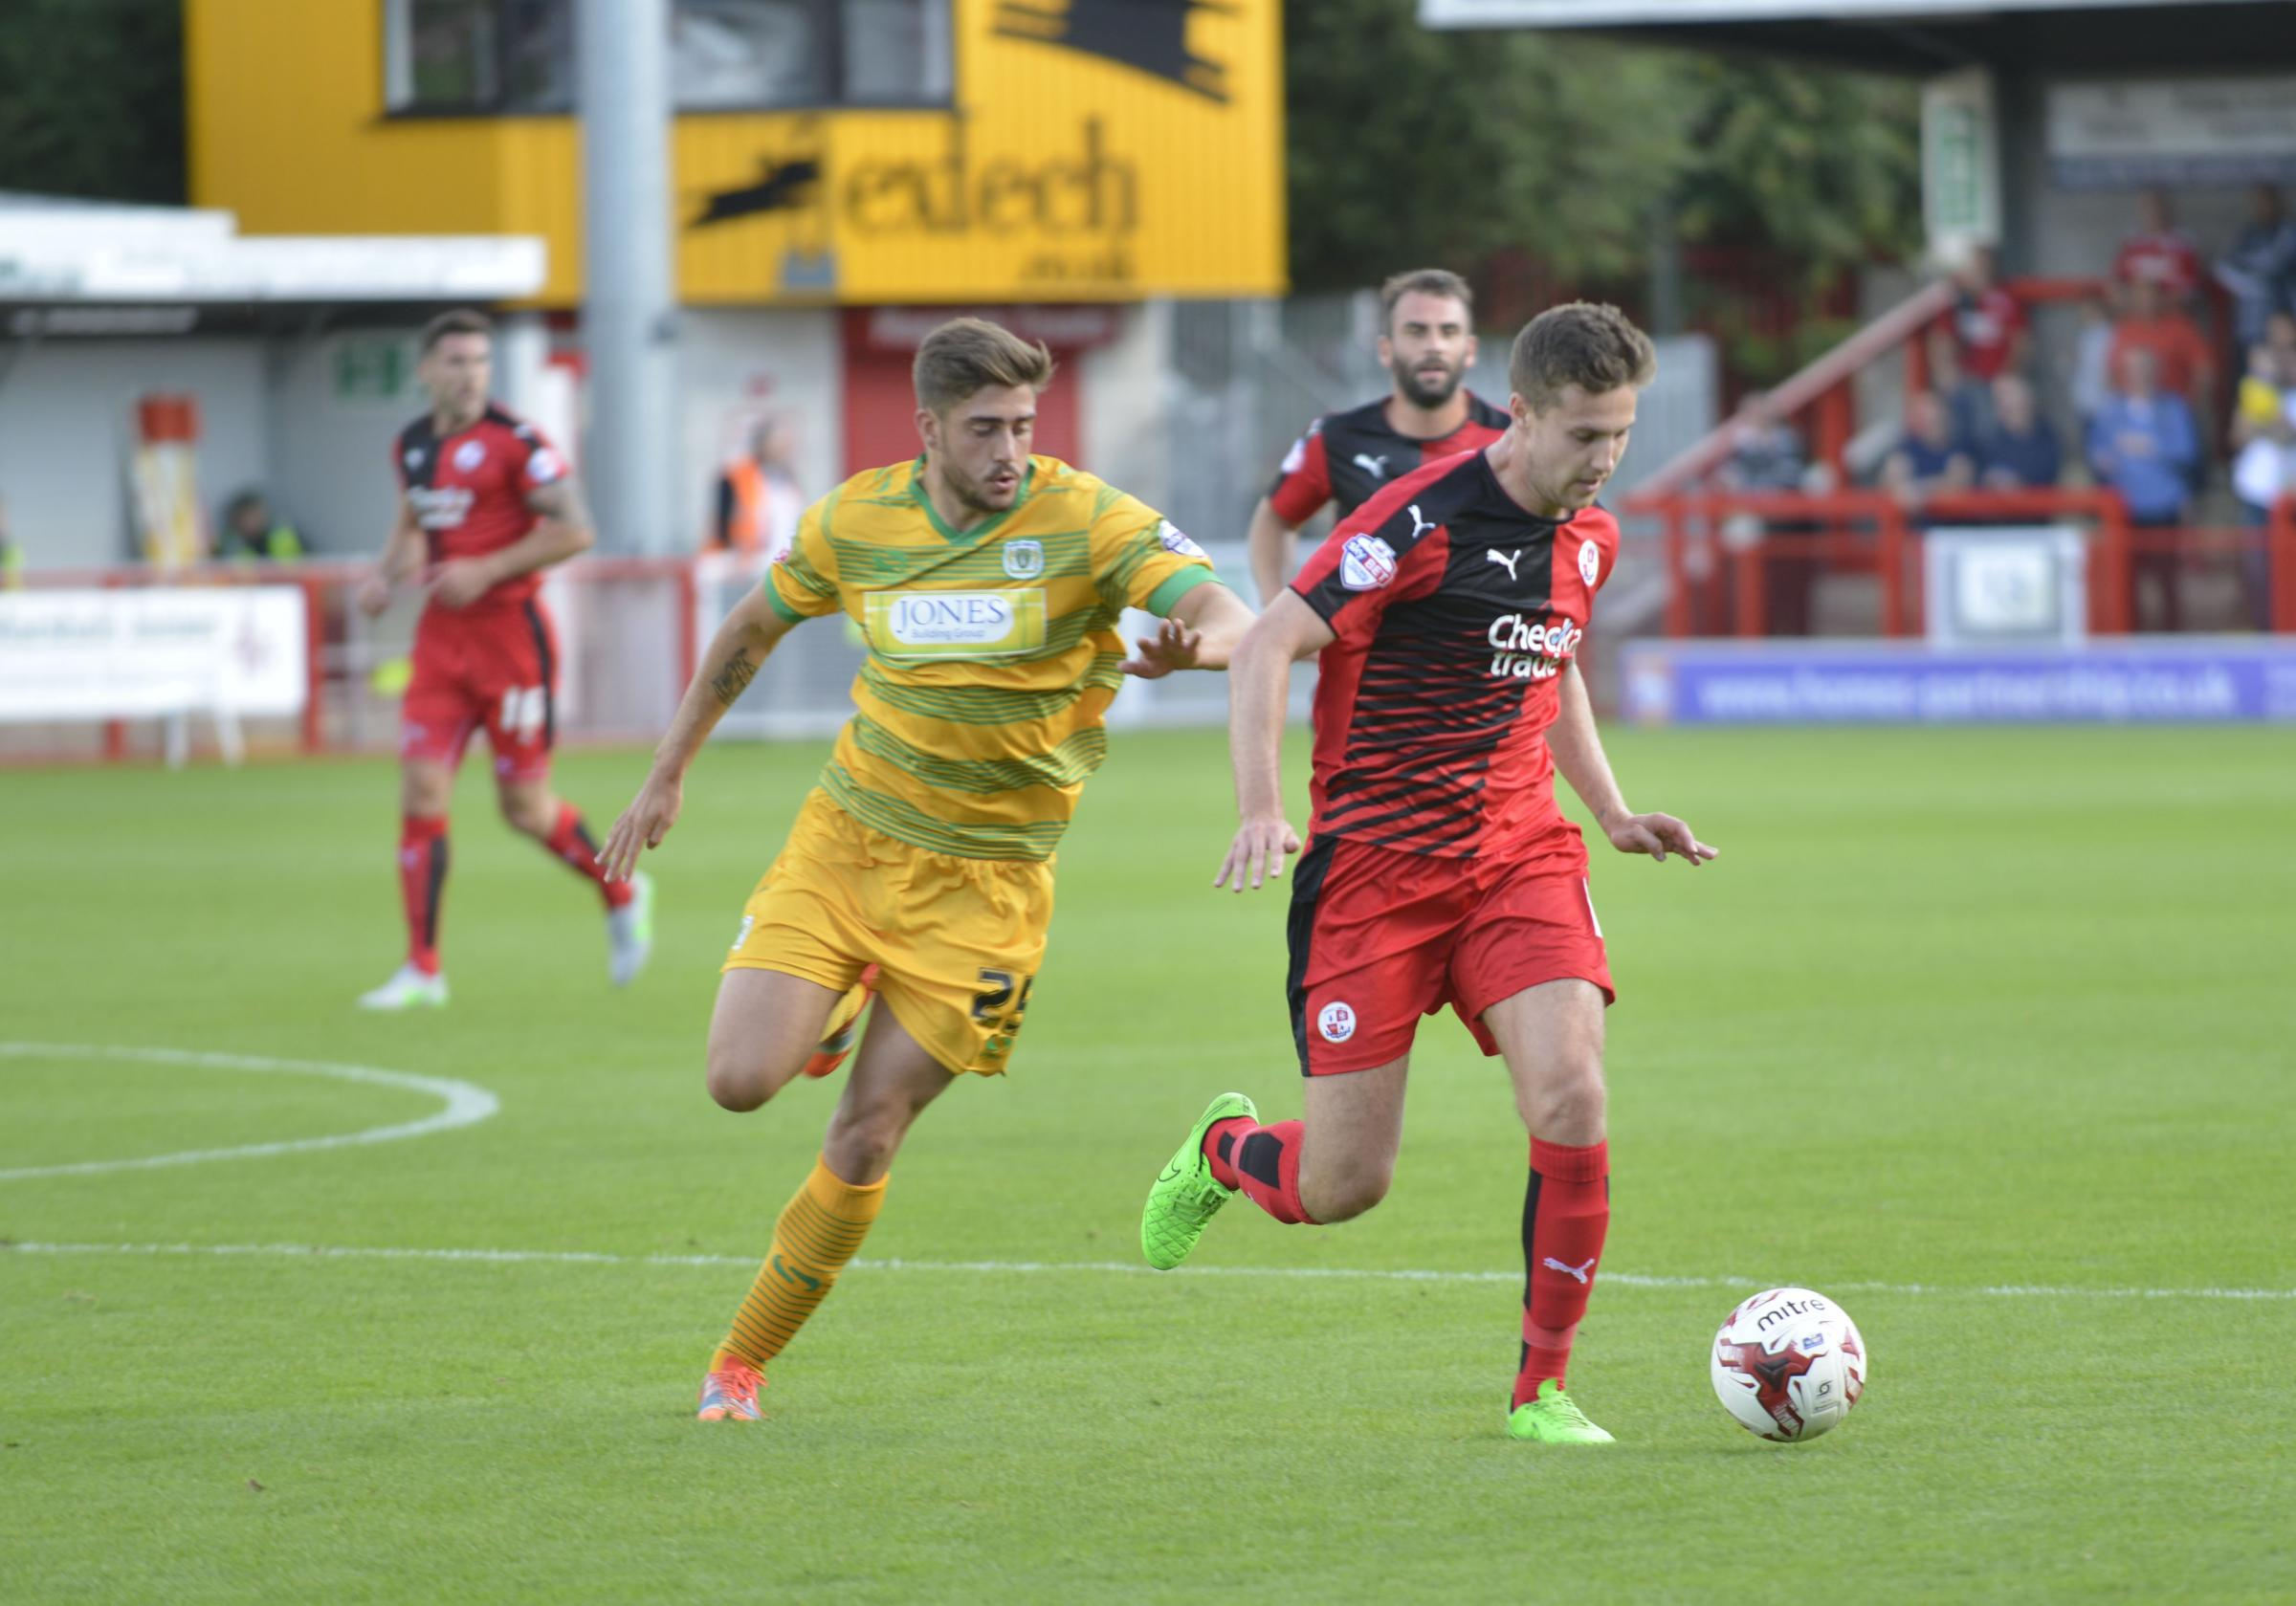 Conor Henderson in action for Crawley this season. Picture by Terry Applin